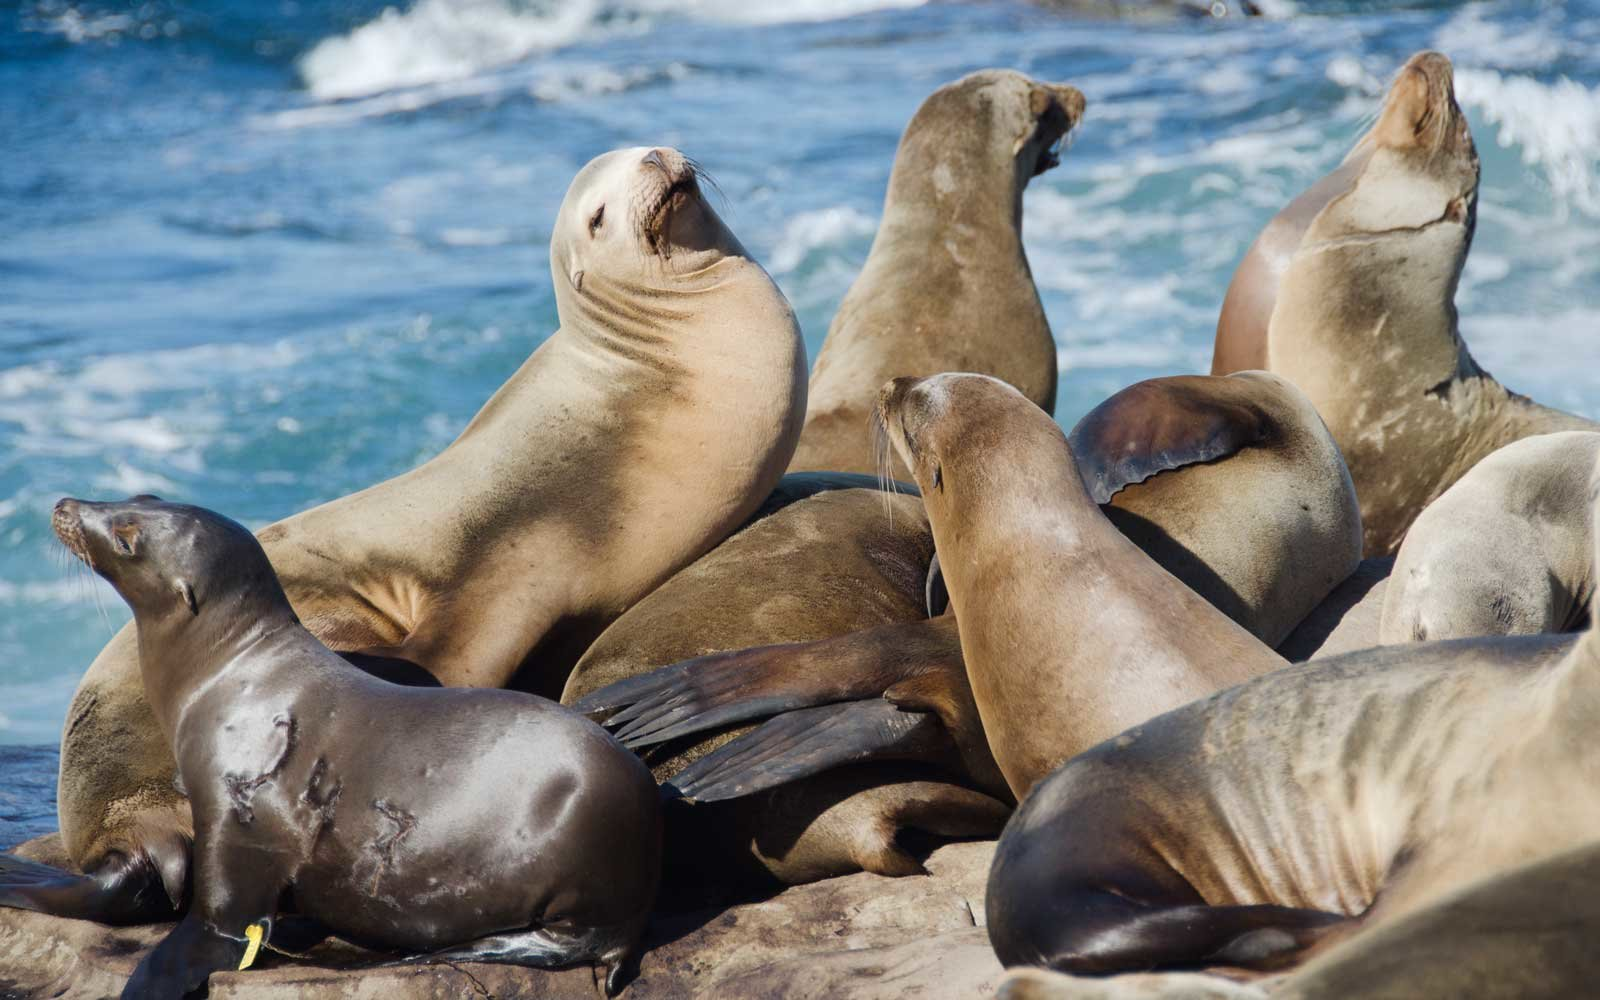 Gathering of Sea Lions near La Jolla Cove in California